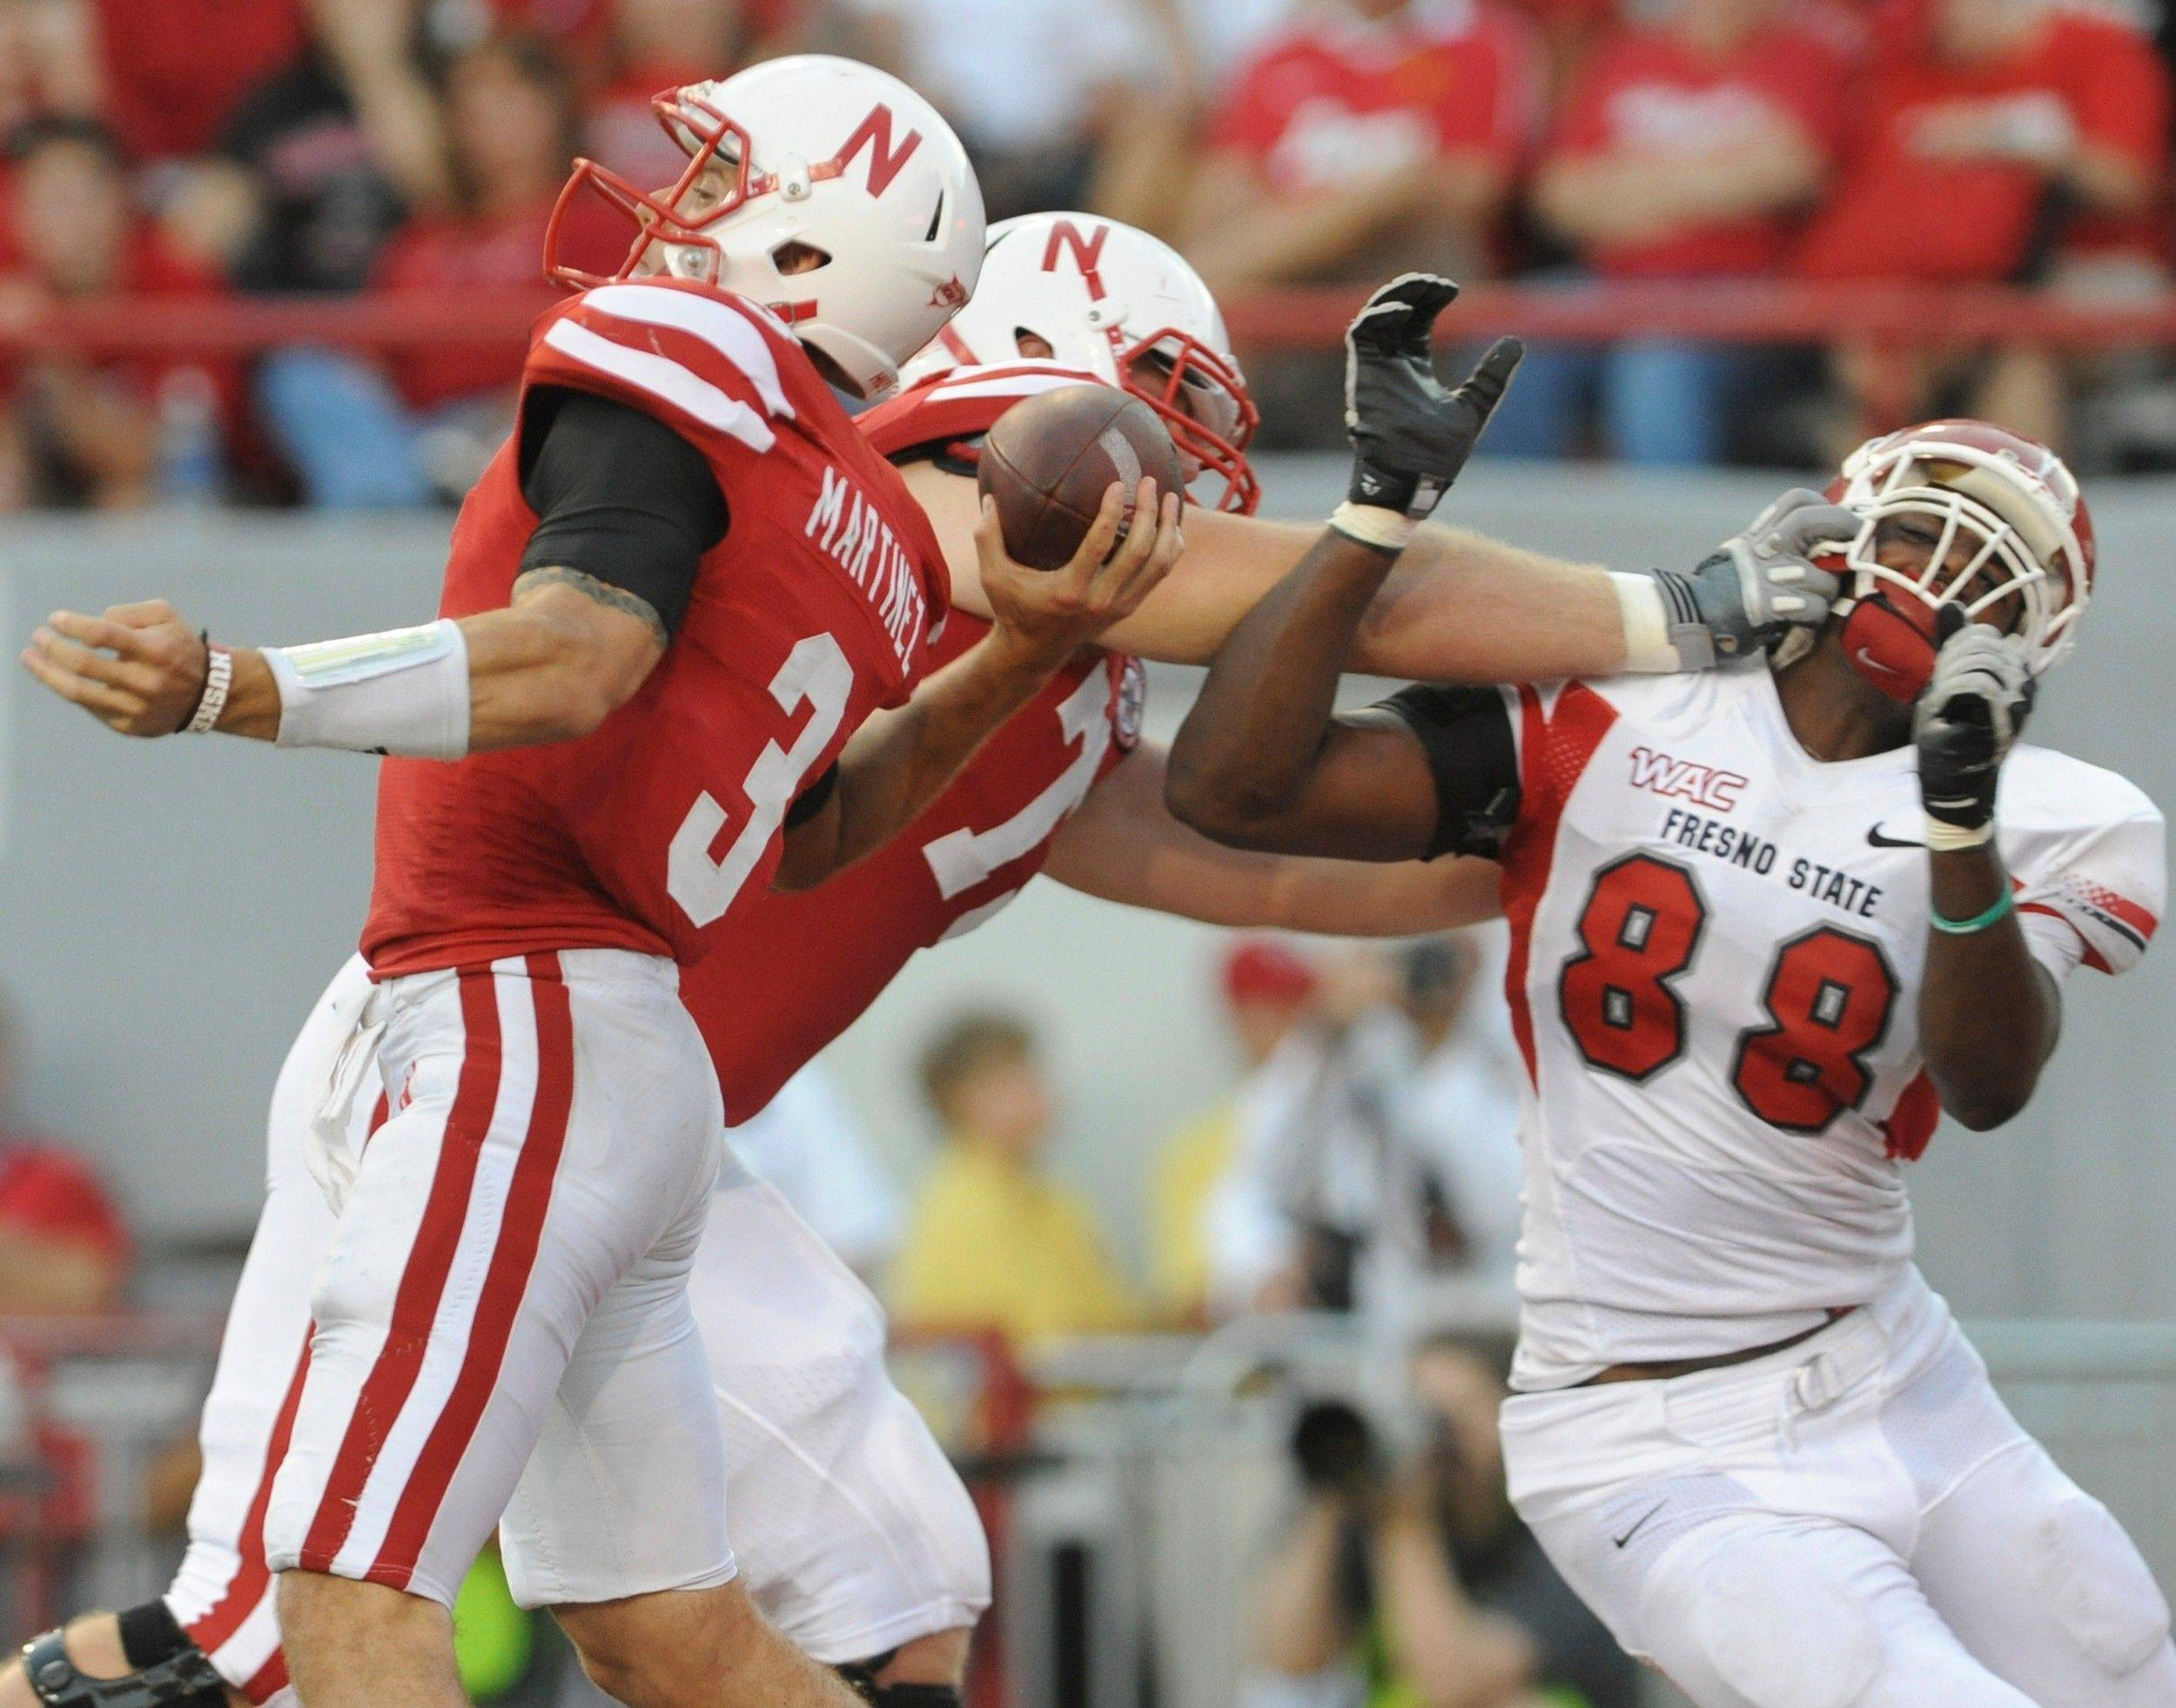 Nebraska turns back Fresno St. upset bid 42-29